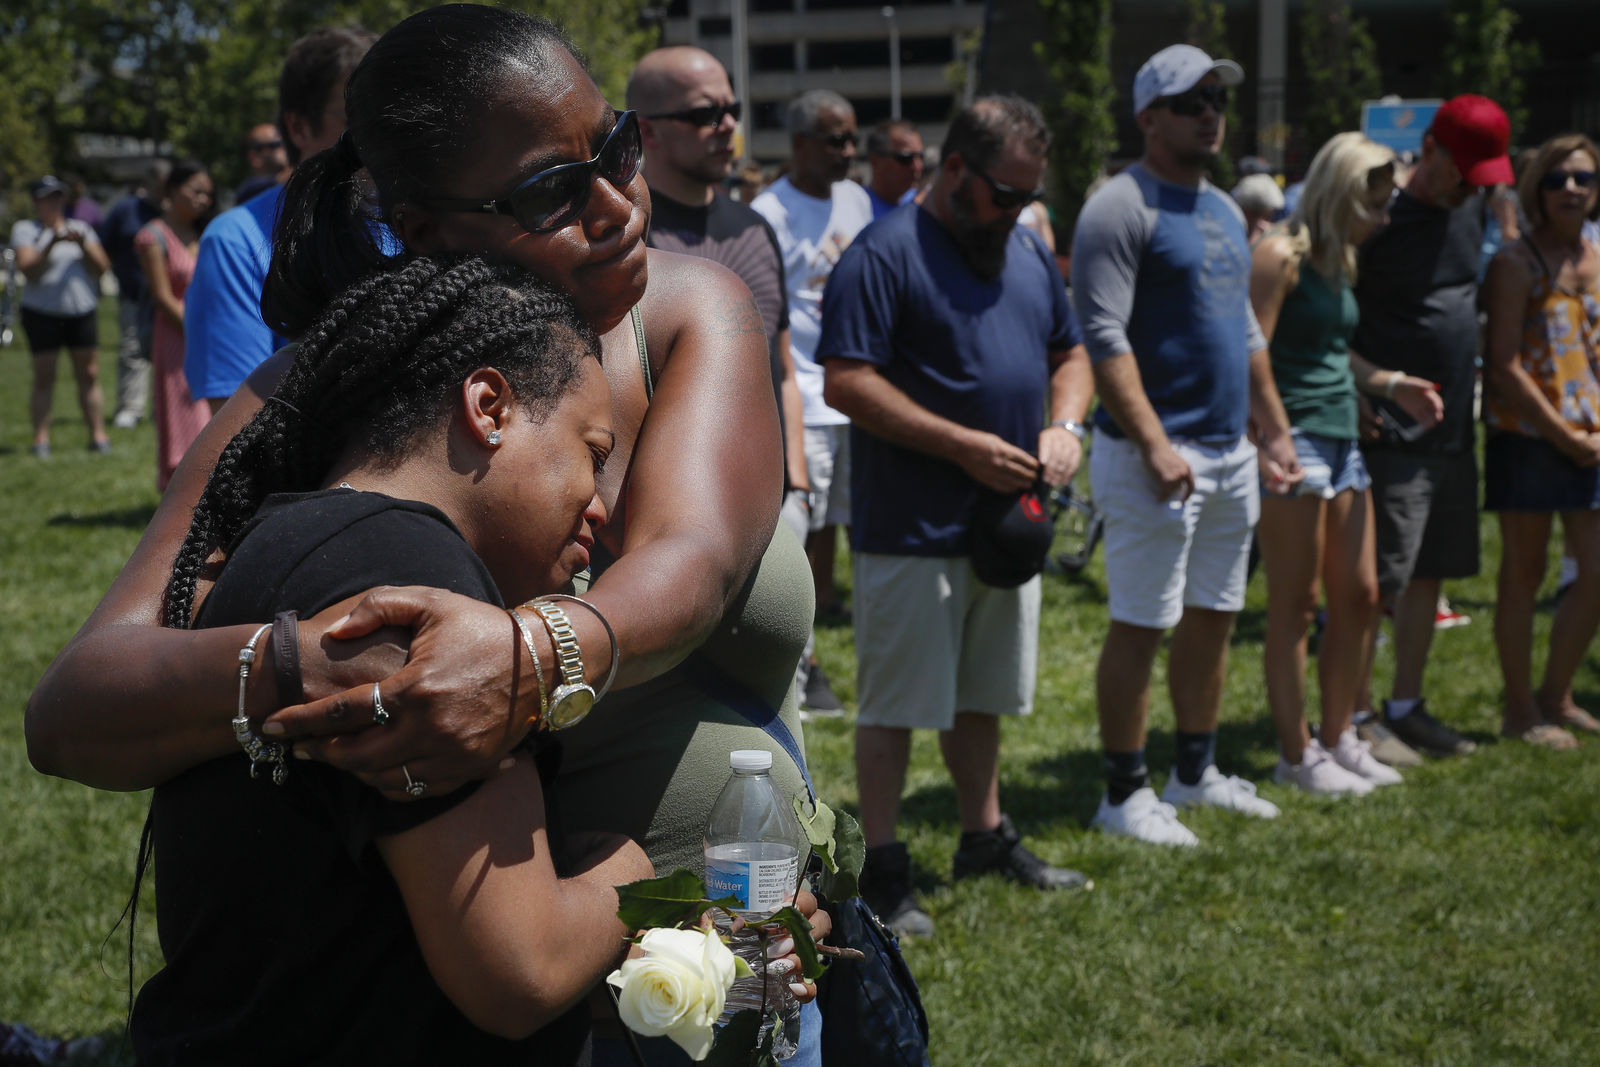 FILE - In this Aug. 4, 2019, file photo, mourners gather at a vigil following a nearby mass shooting in Dayton, Ohio. In the days and weeks since three high-profile shootings took the lives of more than two dozen people in just a week's time, law enforcement authorities have reported seeing a spike in the number of tips they are receiving from concerned relatives, friends and co-workers of people who appear bent on carrying out the next mass shooting. (AP Photo/John Minchillo, FIle)